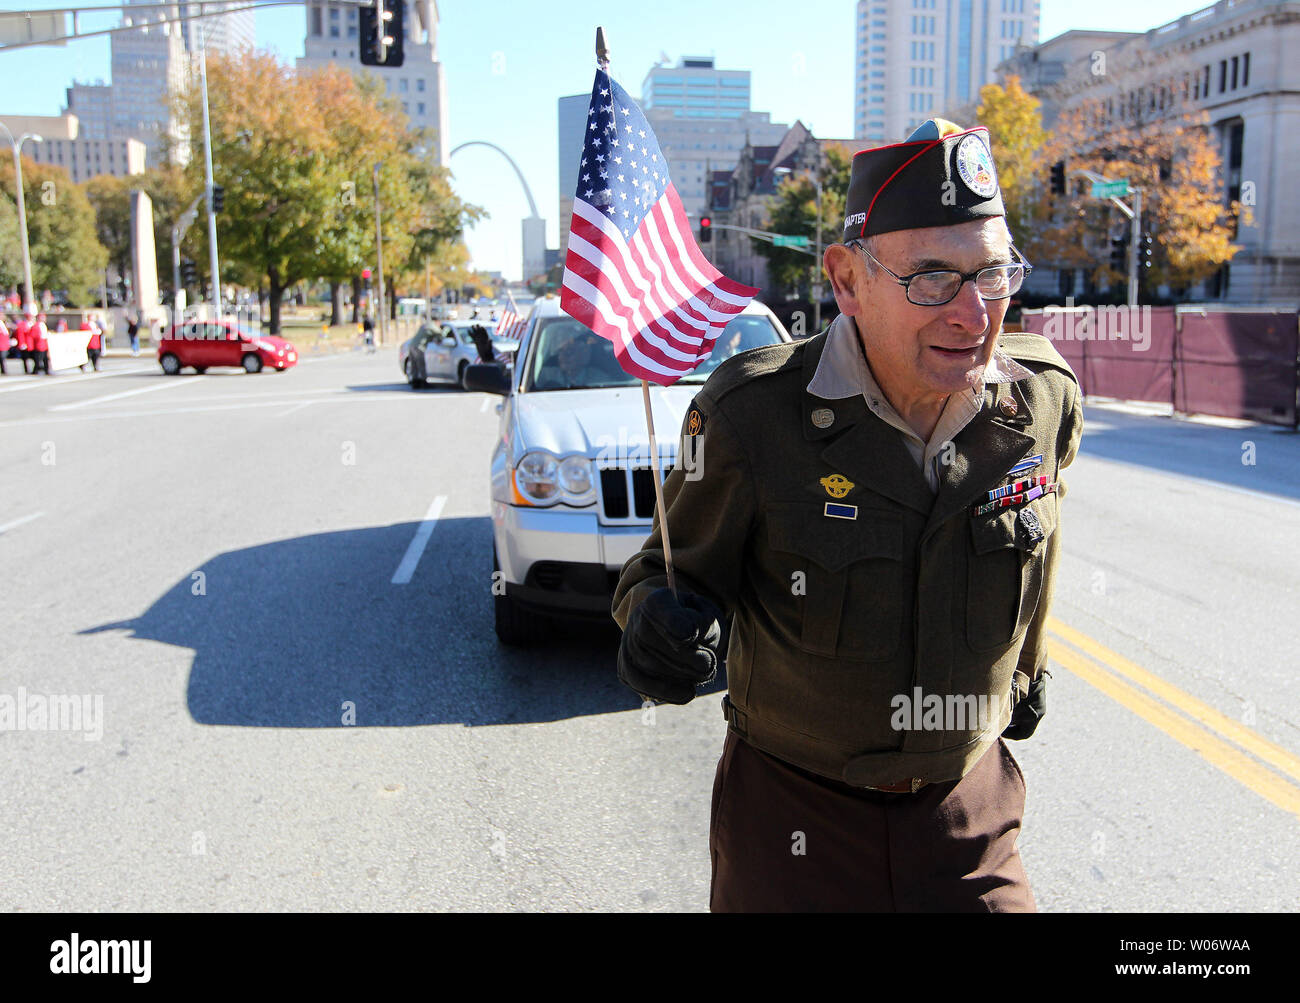 World War II Army veteran Vincent Freeman marches alone in the 27th Annual Saint Louis Regional Veterans' Day Observance Parade in St. Louis on November 6, 2010. UPI/Bill Greenblatt Stock Photo